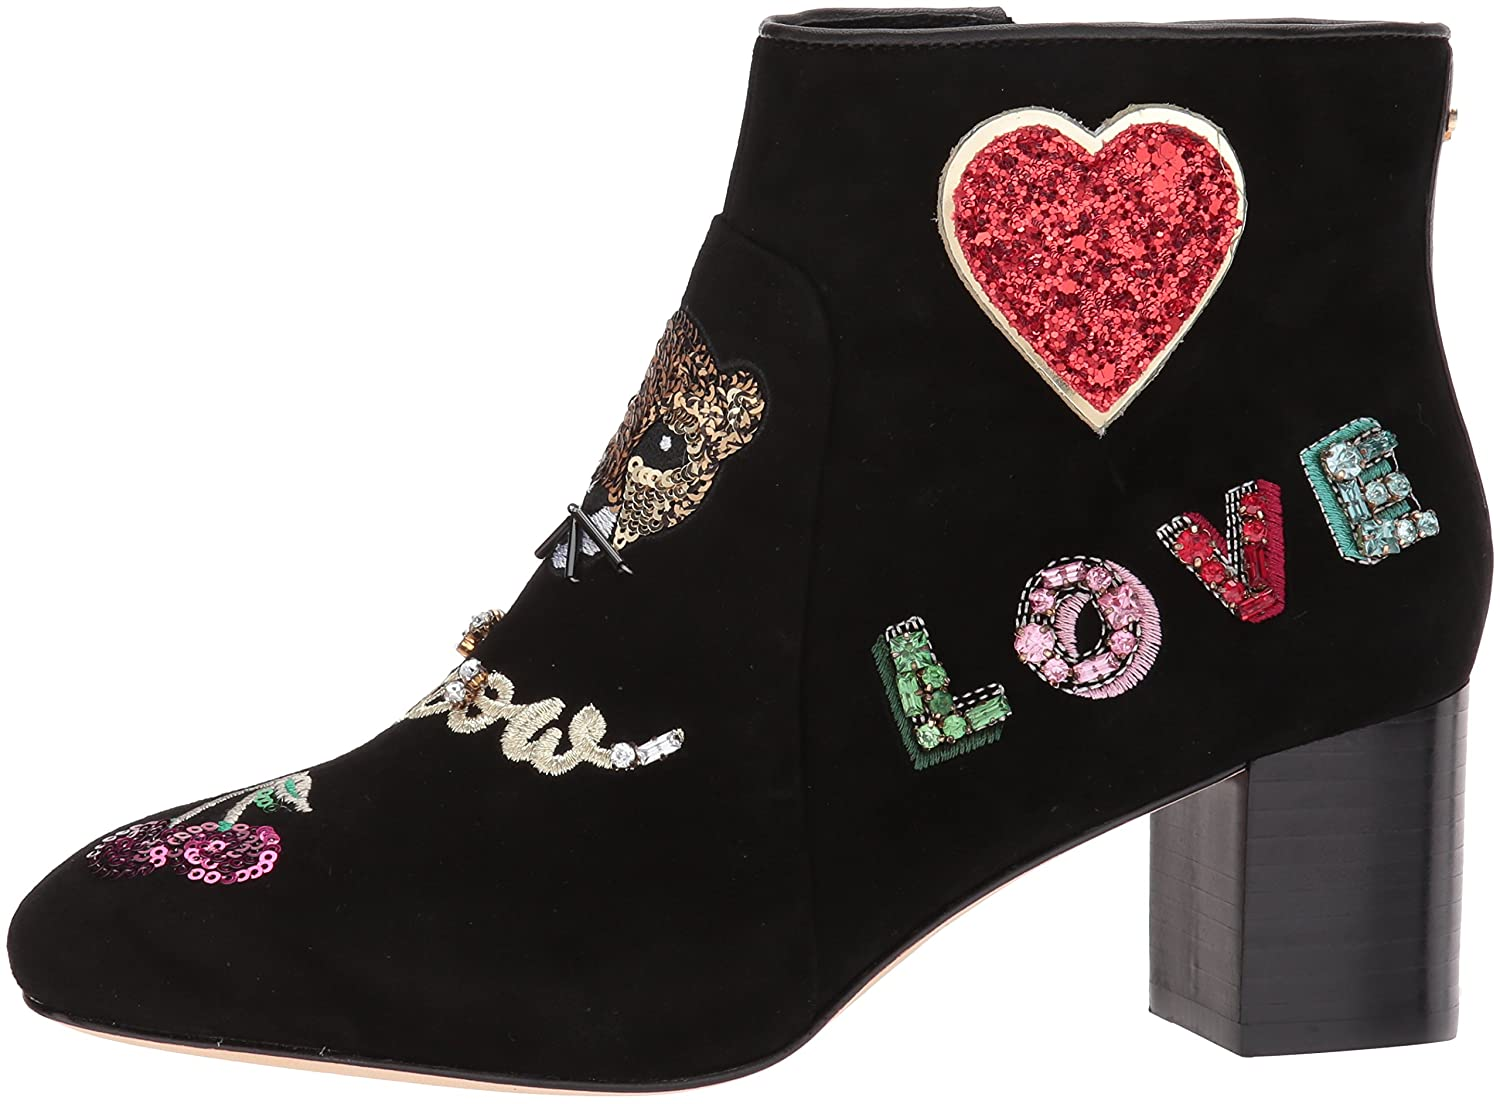 Kate Spade New York Womens Liverpool Ankle Boot